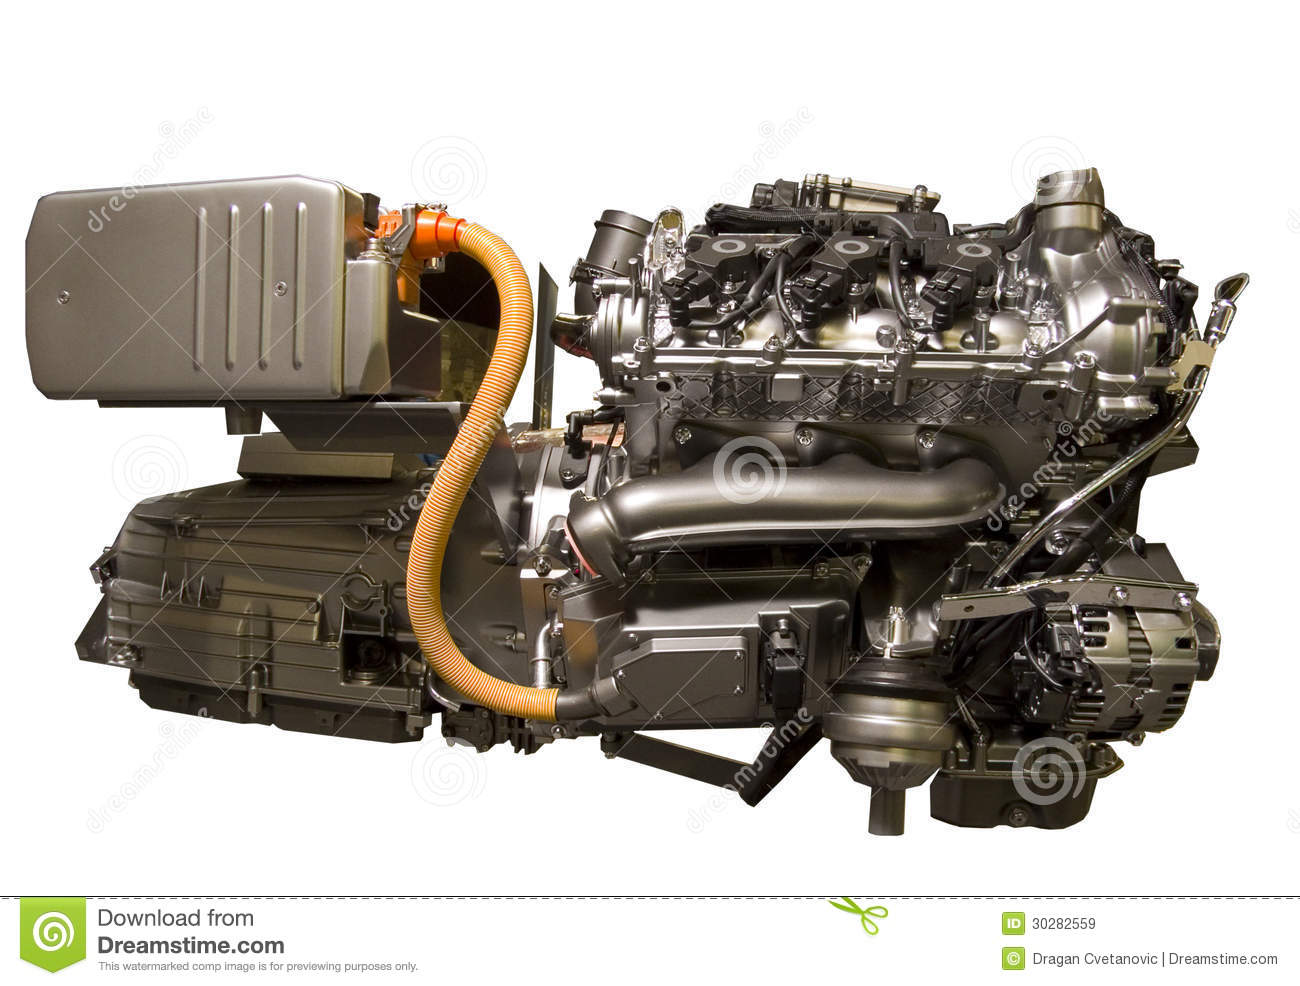 Hybrid Car Engine From S Class Mercedes Royalty Free Stock